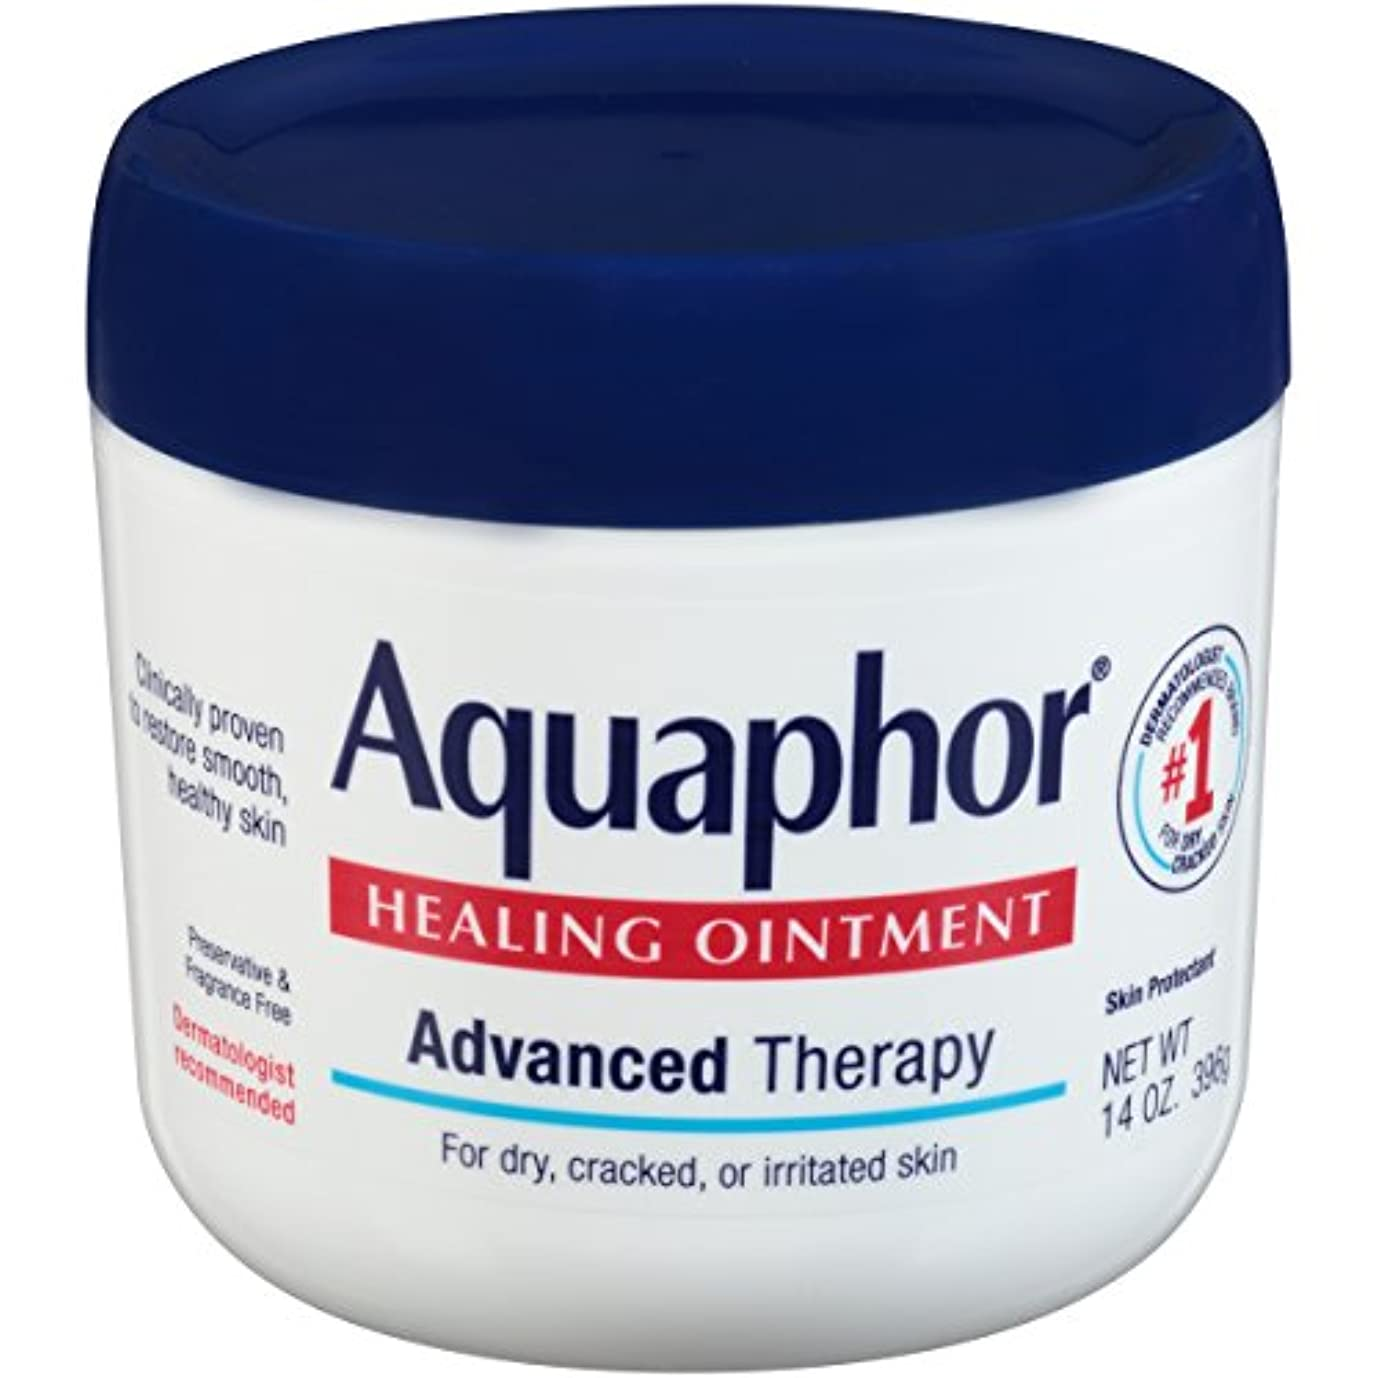 パーティー八百屋スクリーチ海外直送品Aquaphor Advanced Therapy Healing Ointment, 14 oz by Aquaphor